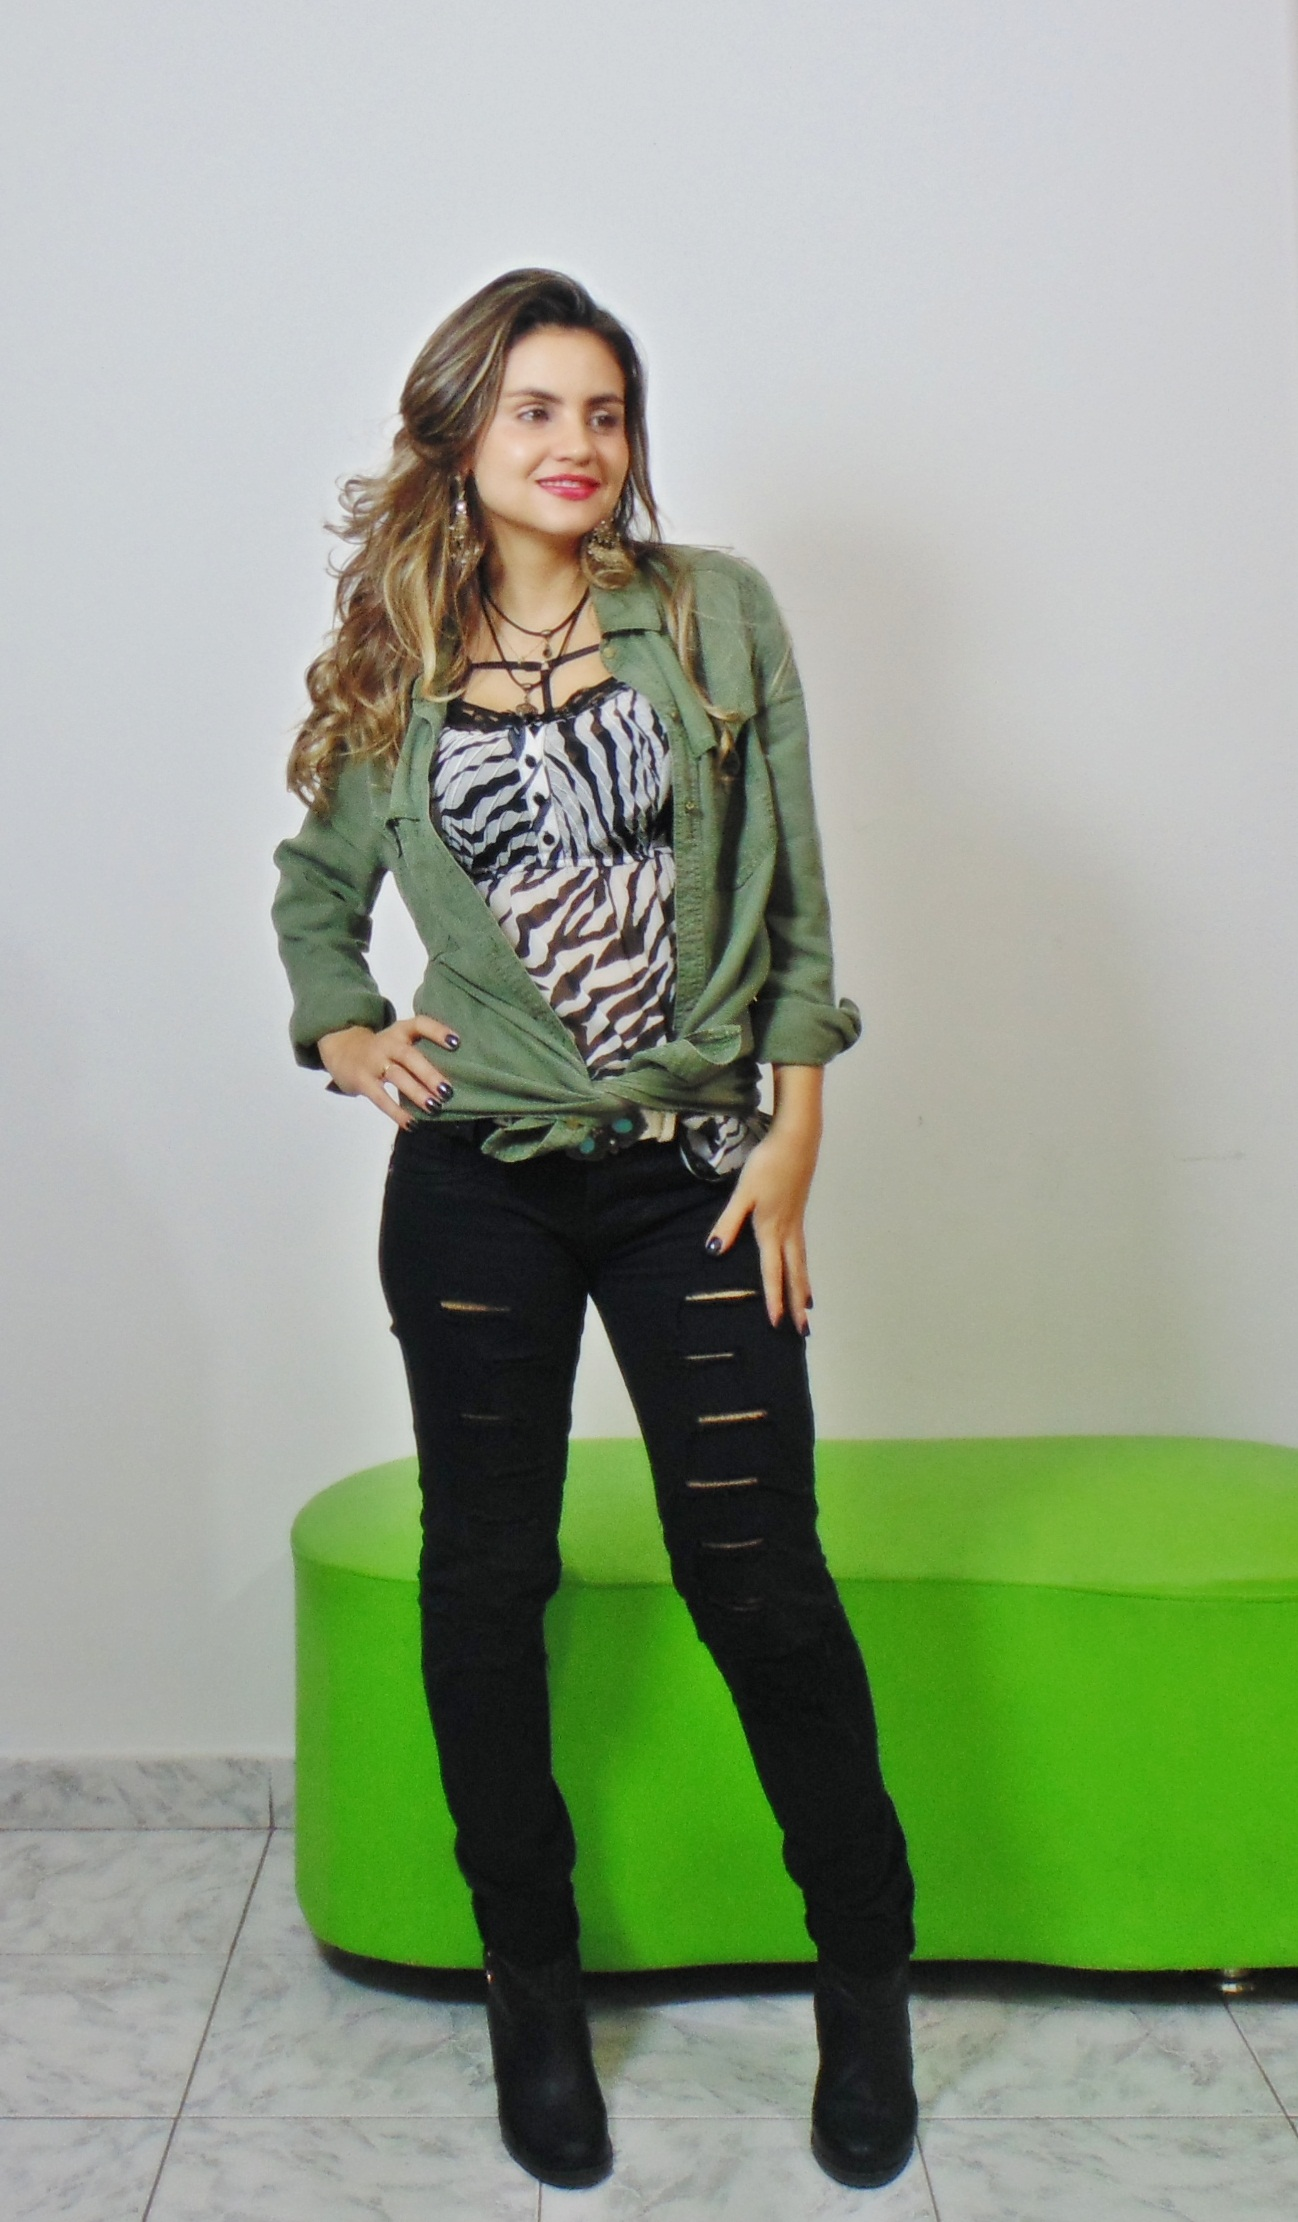 DSC02852 Look da Ká:  Camisa Militar + Jeans Destroyed